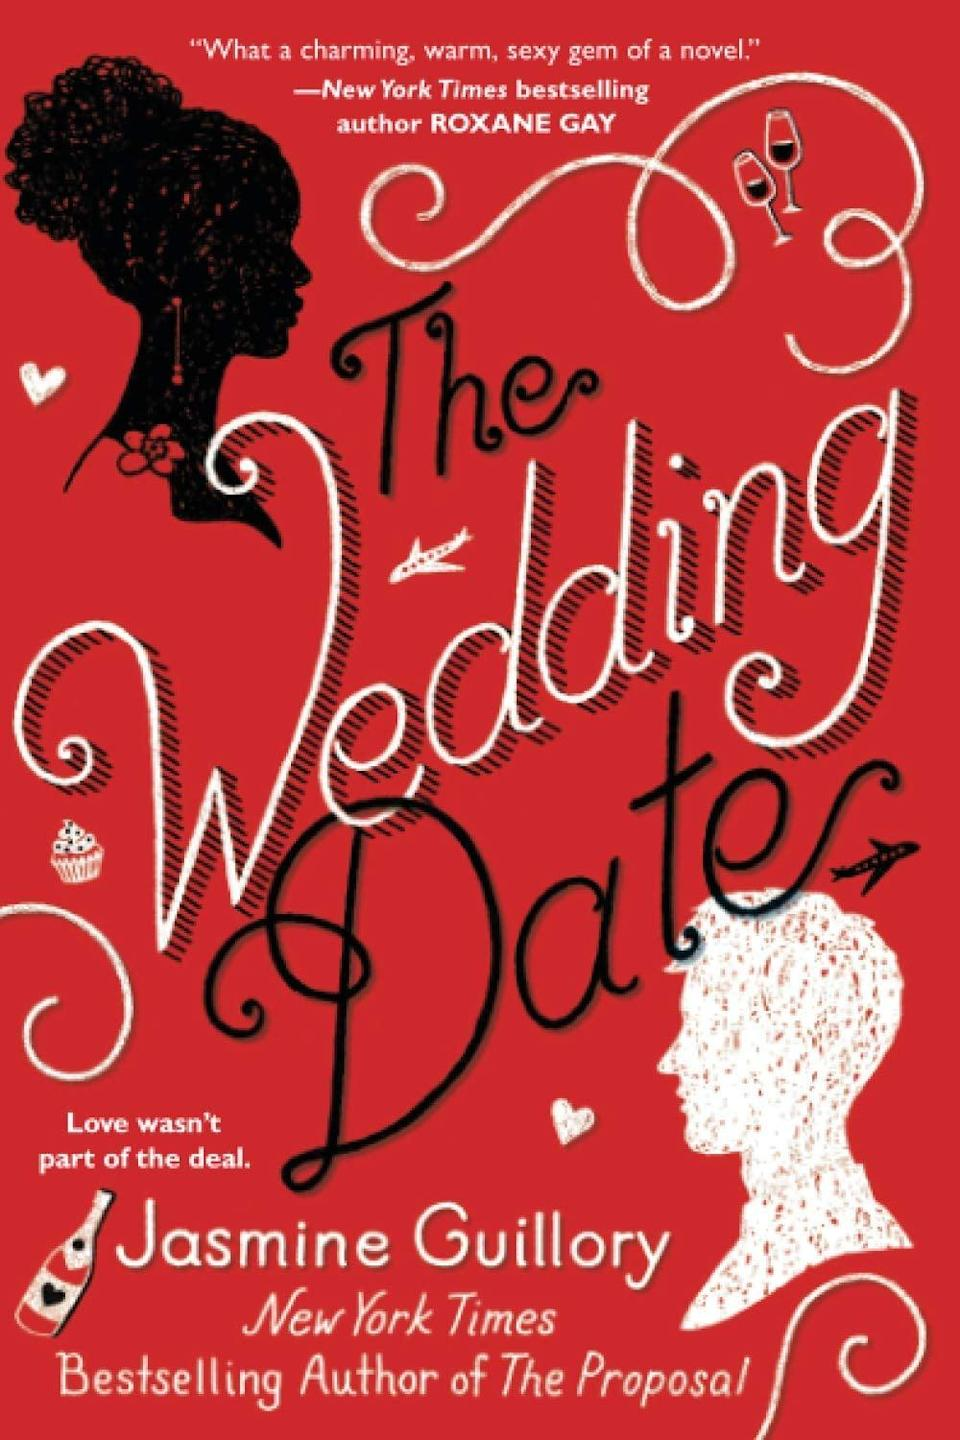 """<p><span><strong>The Wedding Date</strong> by Jasmine Guillory</span> ($8) starts when Alexa and Drew find themselves stuck in an elevator together and she agrees to be his date and fake girlfriend for his ex's <a class=""""link rapid-noclick-resp"""" href=""""https://www.popsugar.co.uk/Wedding"""" rel=""""nofollow noopener"""" target=""""_blank"""" data-ylk=""""slk:wedding"""">wedding</a> the next day. Turns out, they have so much fun together that they decide to continue a casual fling after their whirlwind weekend, even if it means going long-distance.</p> <p>This story reminds me a lot of the 2010 film <strong>Going the Distance</strong> (RIP <a class=""""link rapid-noclick-resp"""" href=""""https://www.popsugar.co.uk/Drew-Barrymore"""" rel=""""nofollow noopener"""" target=""""_blank"""" data-ylk=""""slk:Drew Barrymore"""">Drew Barrymore</a> and <a class=""""link rapid-noclick-resp"""" href=""""https://www.popsugar.co.uk/Justin-Long"""" rel=""""nofollow noopener"""" target=""""_blank"""" data-ylk=""""slk:Justin Long"""">Justin Long</a>), as Alexa and Drew spend steamy weekends together in between navigating their respective jobs in different cities. In fact, I can already see a montage of their weekend dates playing out on screen! This book is unrelated to the 2005 film of the same name, which, if you haven't seen, I also recommend!</p>"""